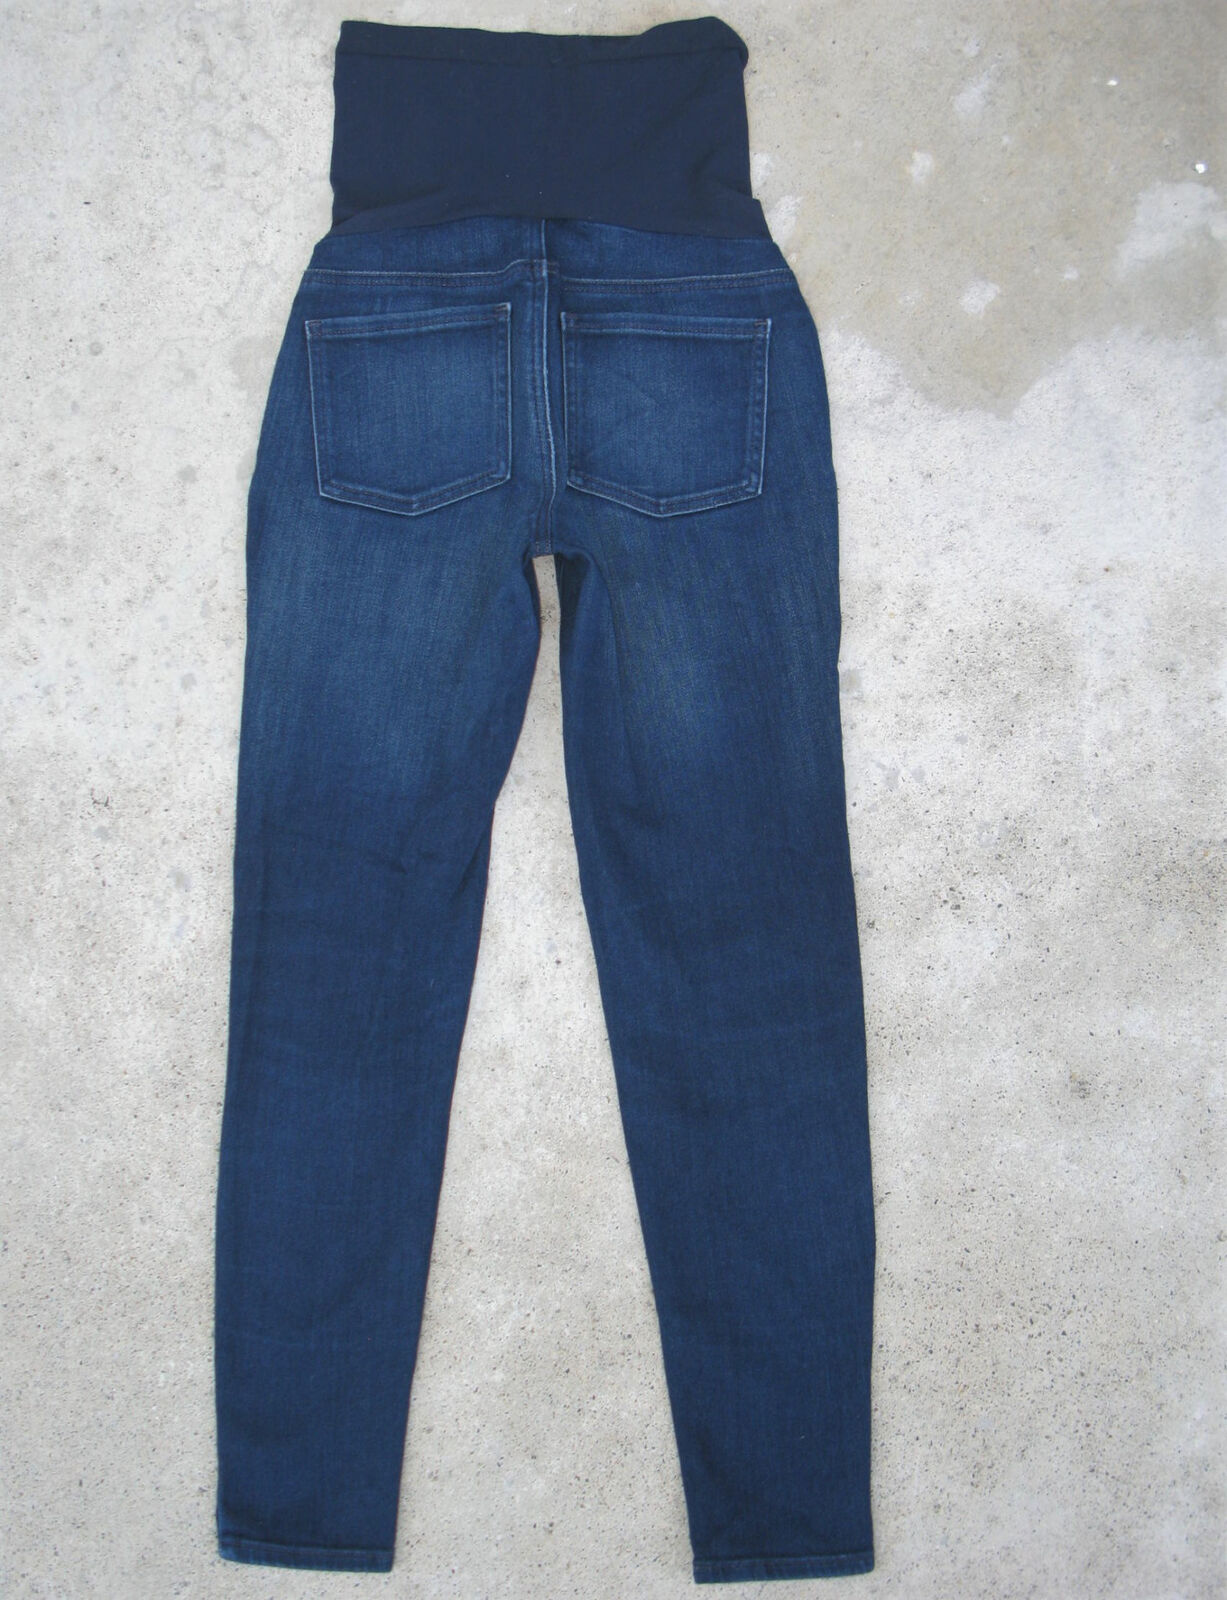 Pea in the Pod Skinny Ankle Maternity Jeans Sz 27 Wide Panel Stretchy Dark bluee